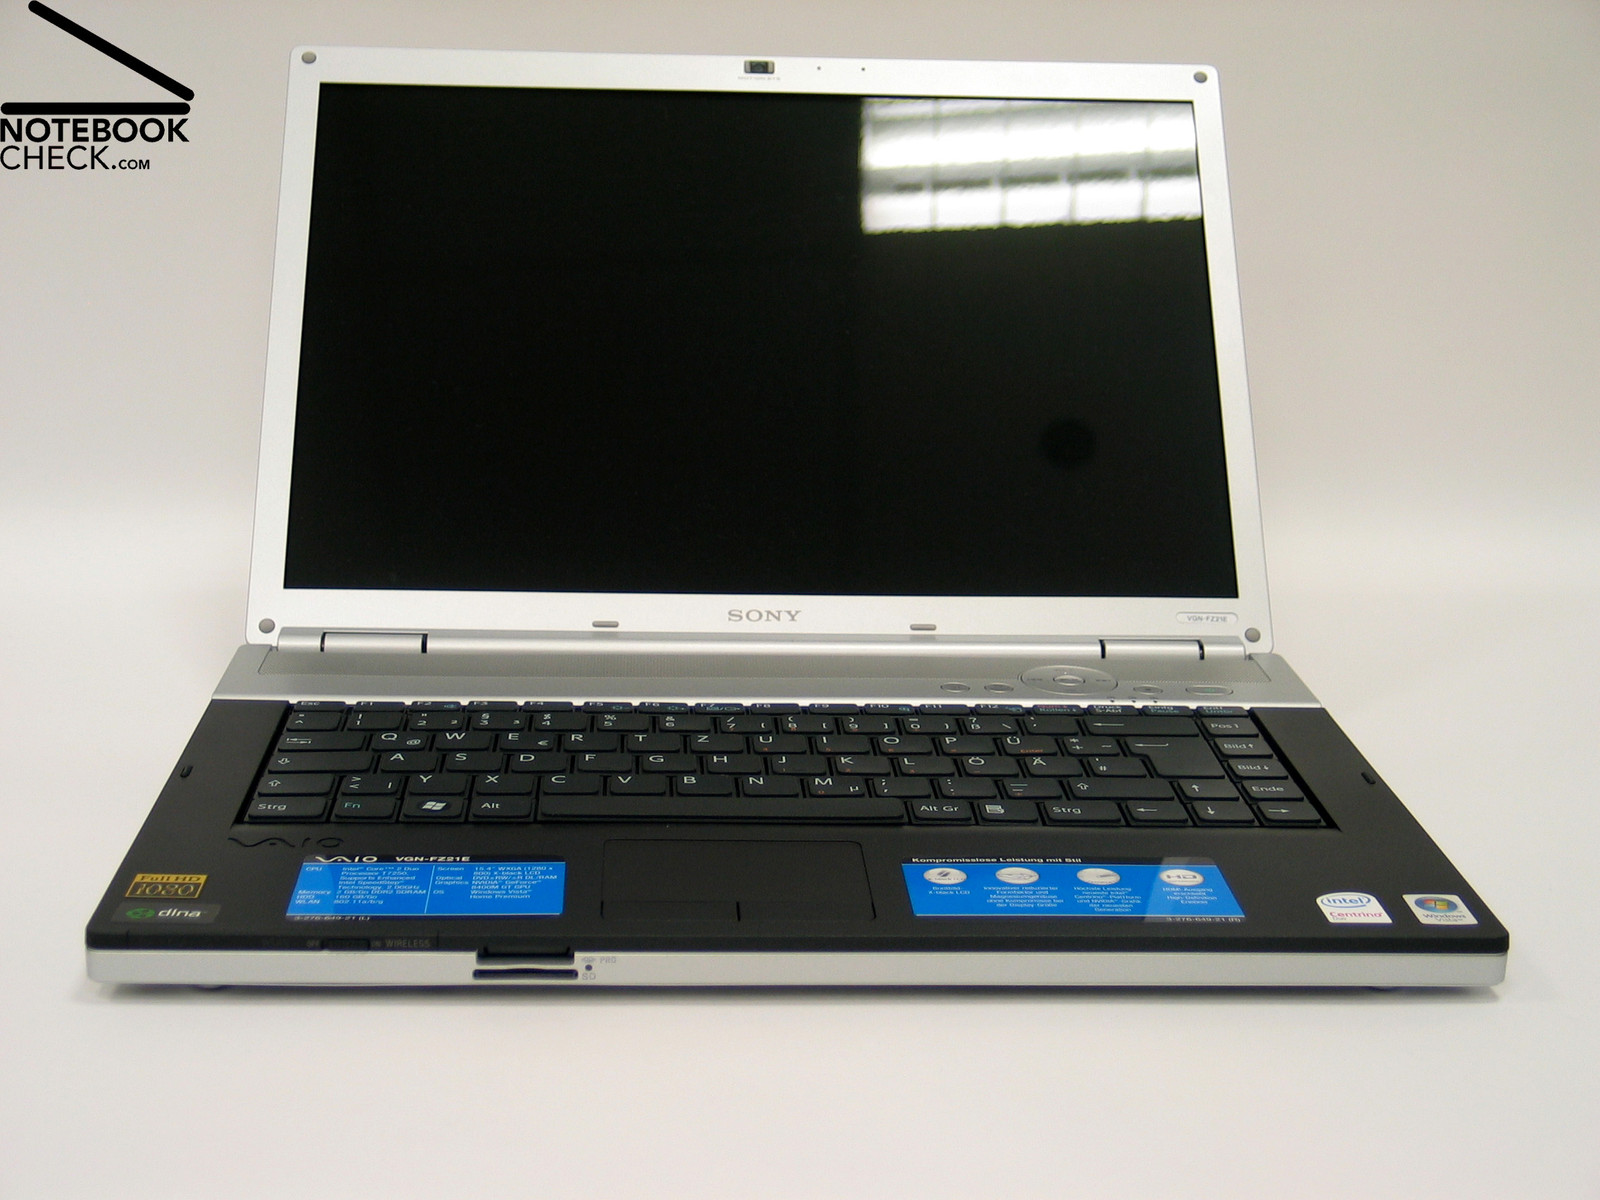 SONY VAIO VGN-FZ21M DRIVER FOR WINDOWS 7